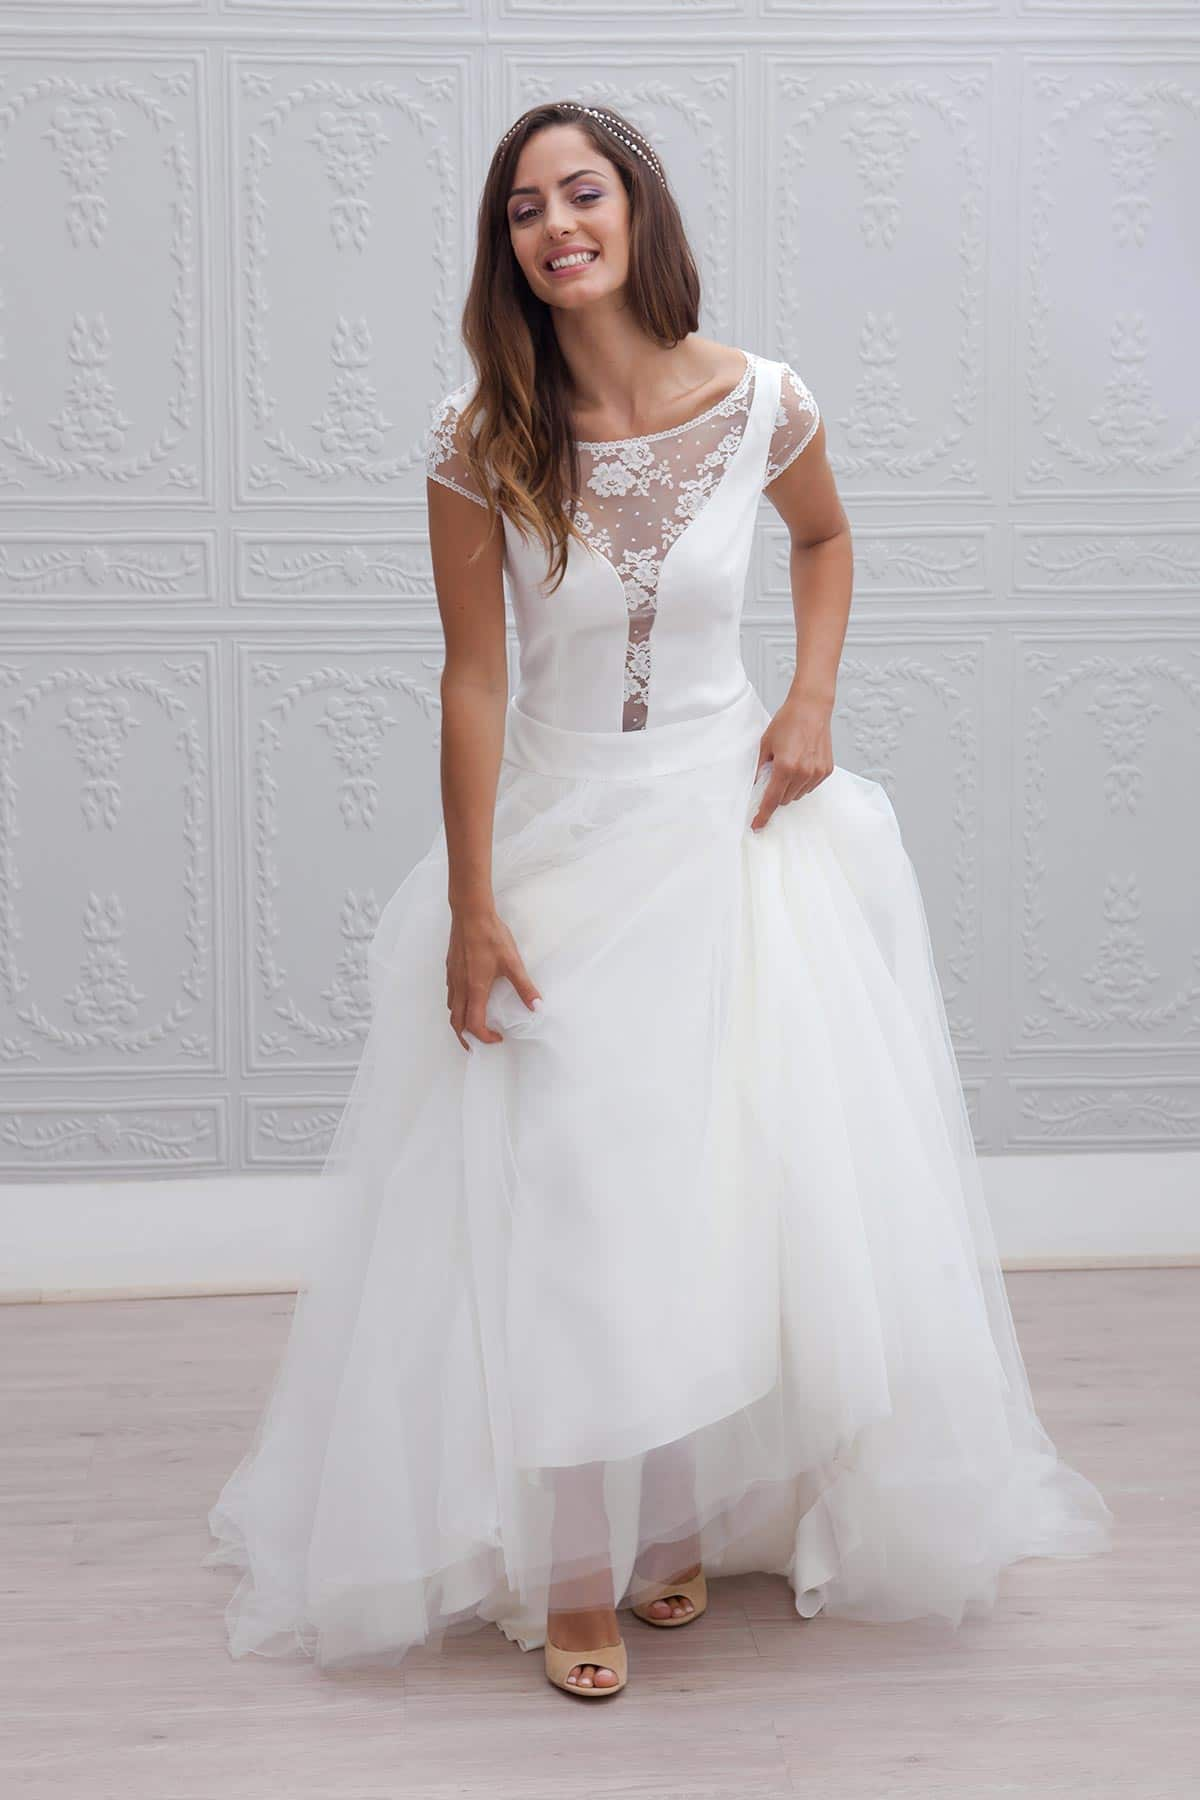 Marie Laporte collection 2015 Marie Laporte Collection 2015 21 - Blog Mariage